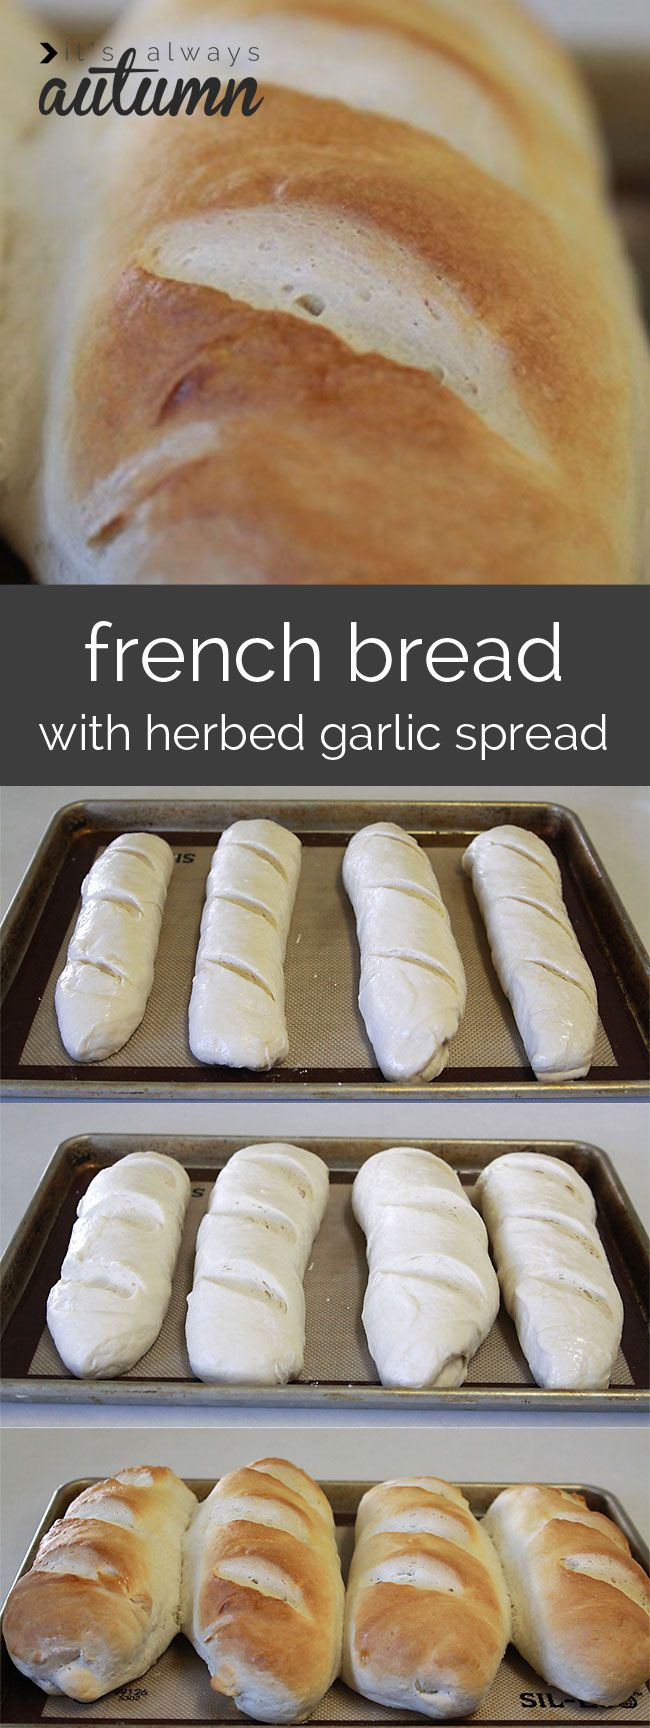 best bread EVER! homemade french bread made easy with a great recipe and step by step photos. recipe includes a simple herbed garlic butter spread that is amazing!